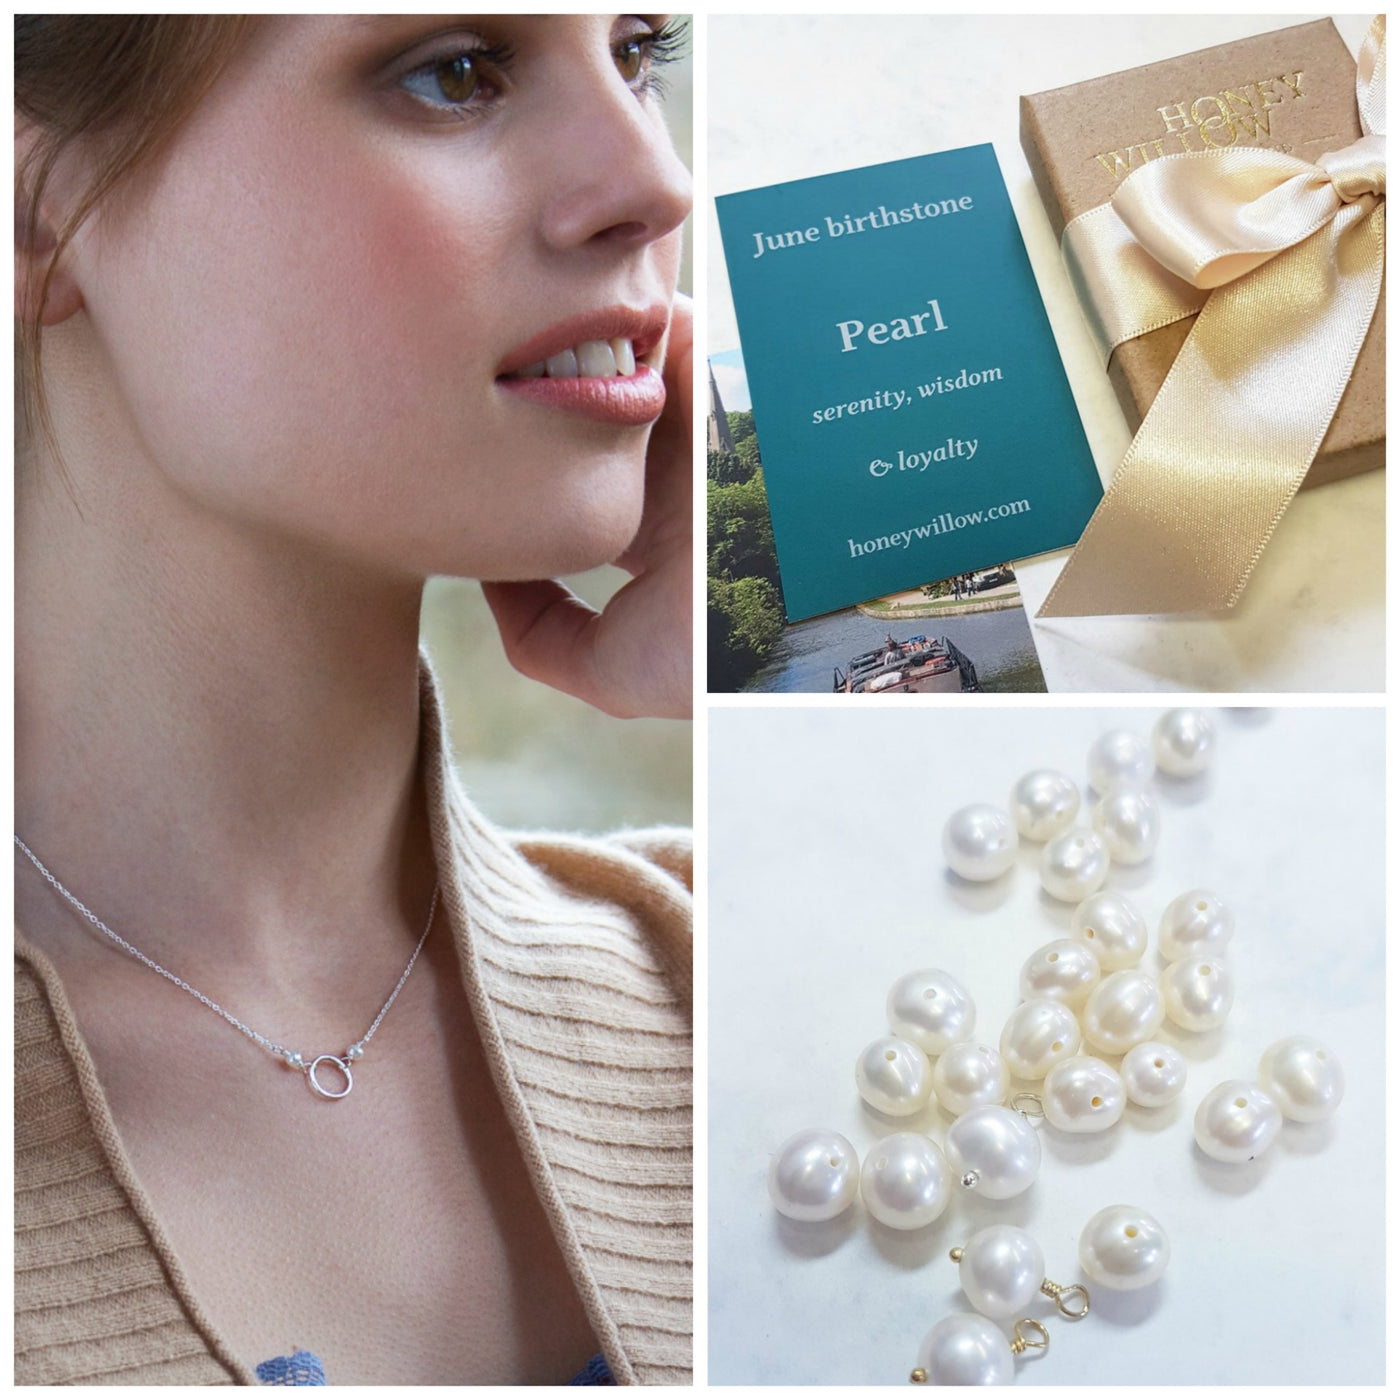 Dainty pearl infinity necklace, June birthday gift for daughter, goddaughter, sister - Luna